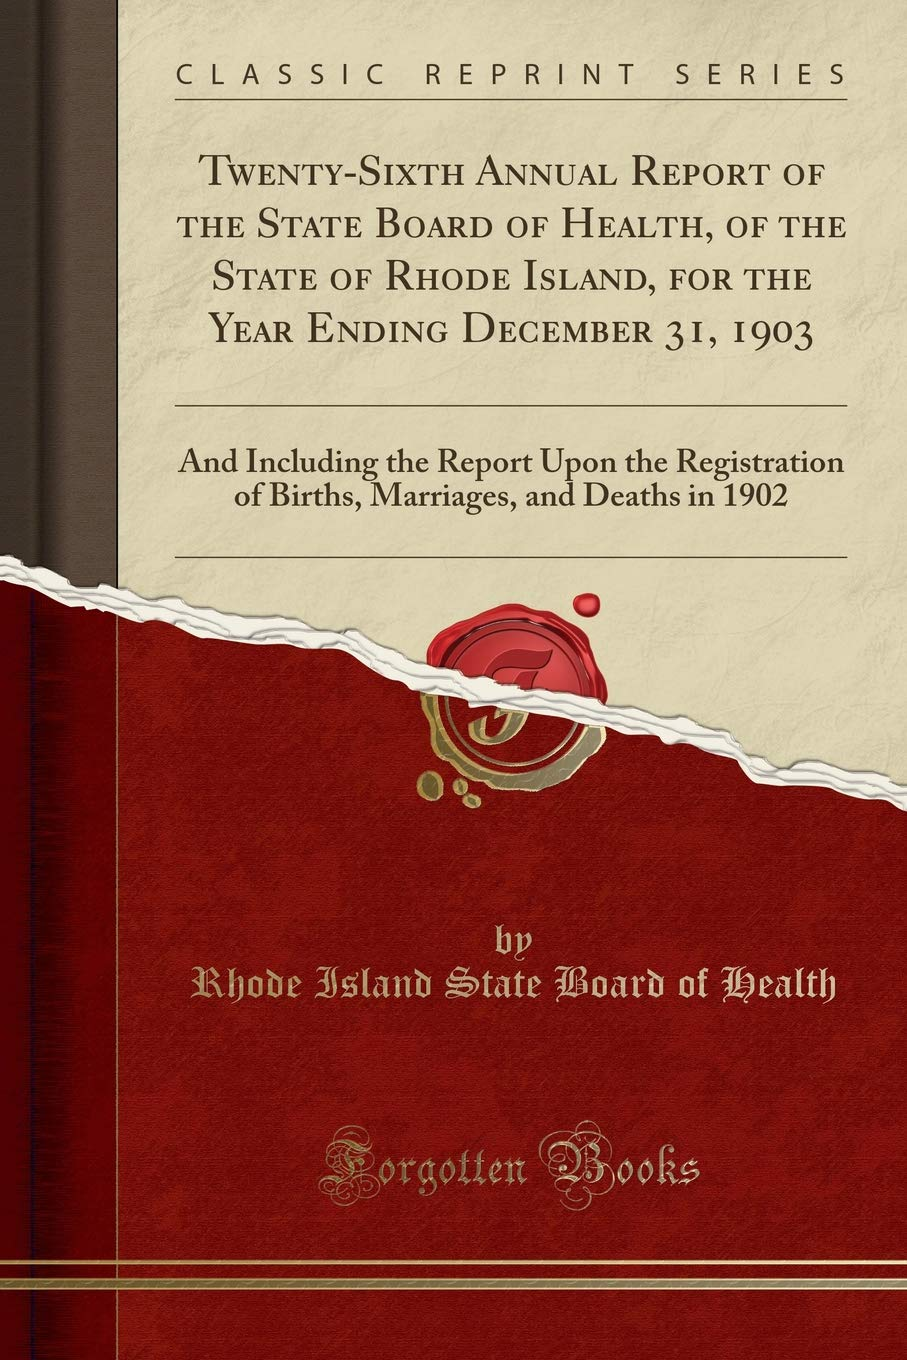 Read Online Twenty-Sixth Annual Report of the State Board of Health, of the State of Rhode Island, for the Year Ending December 31, 1903: And Including the Report ... and Deaths in 1902 (Classic Reprint) ebook